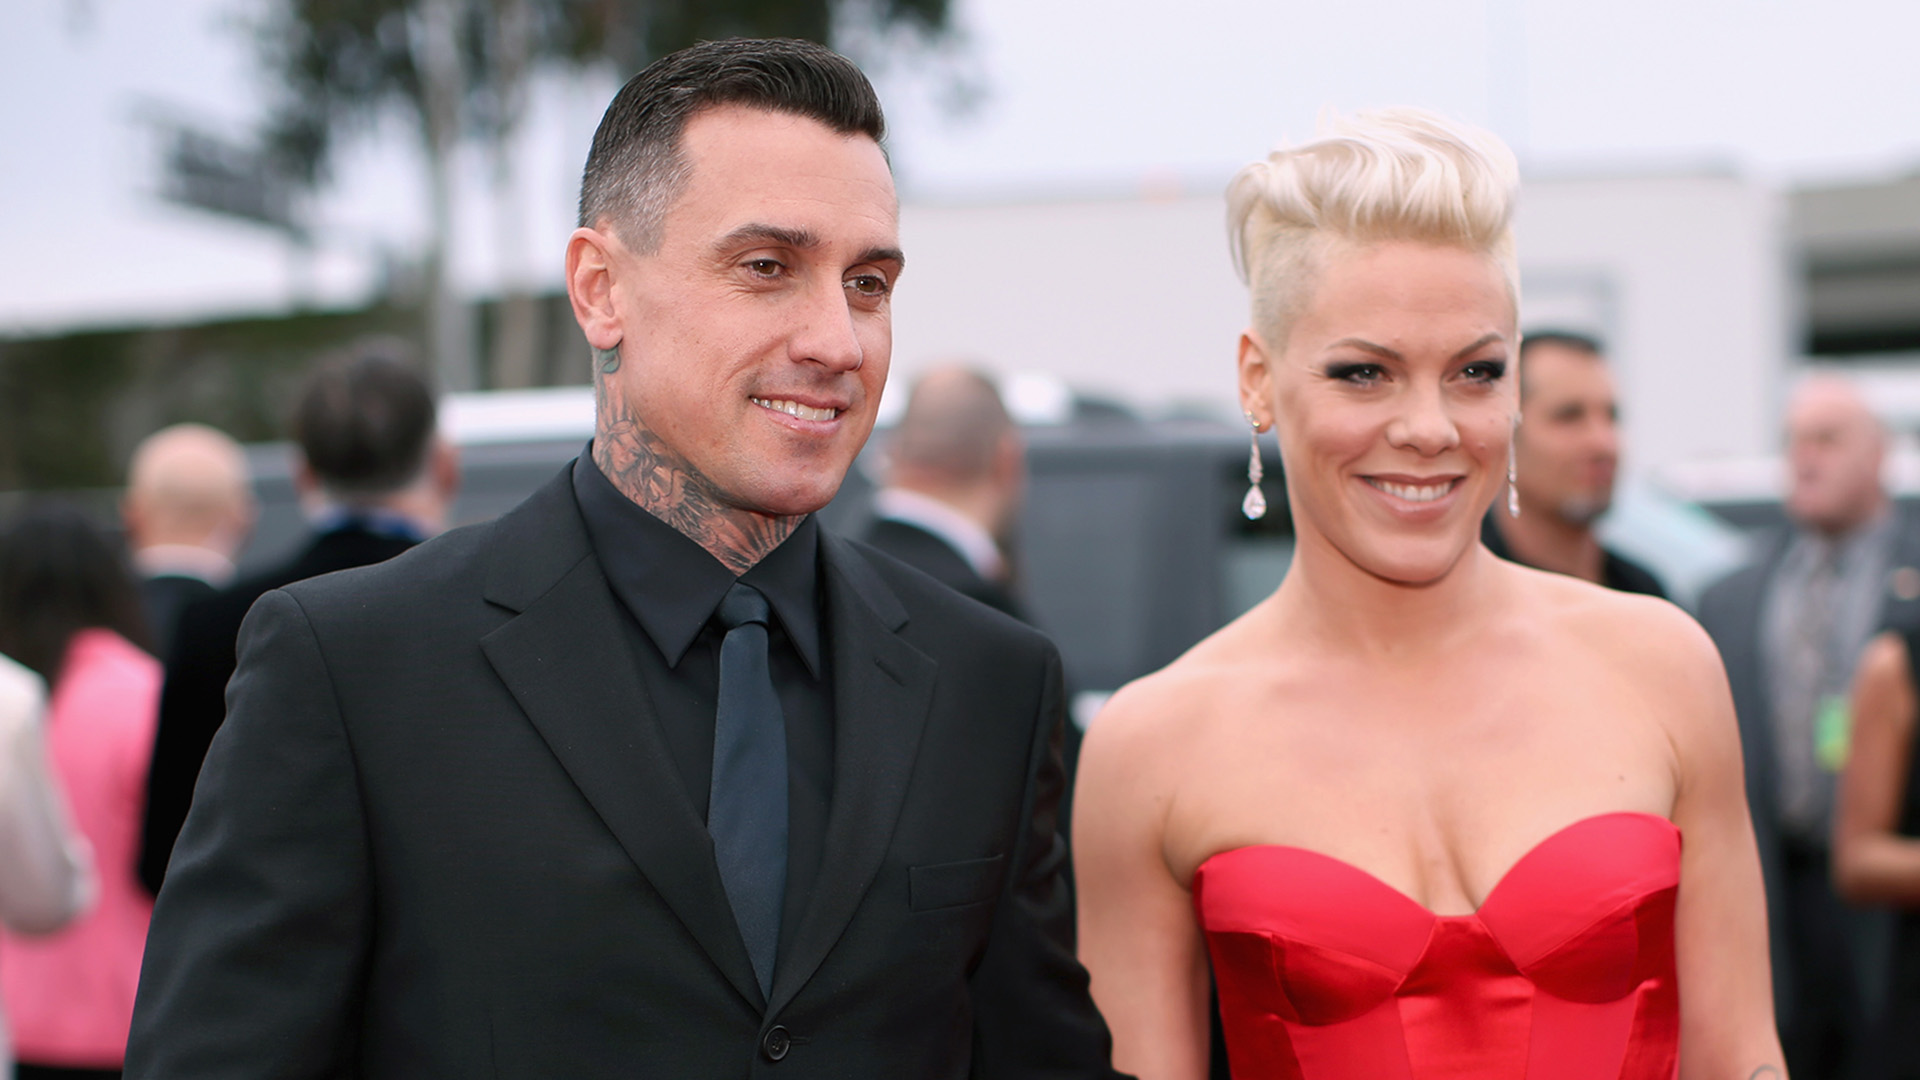 Pink and Carey Hart first began dating in 2001 after meeting at the Summer X Games and since then theyve taken their love all over the globe vacationing in